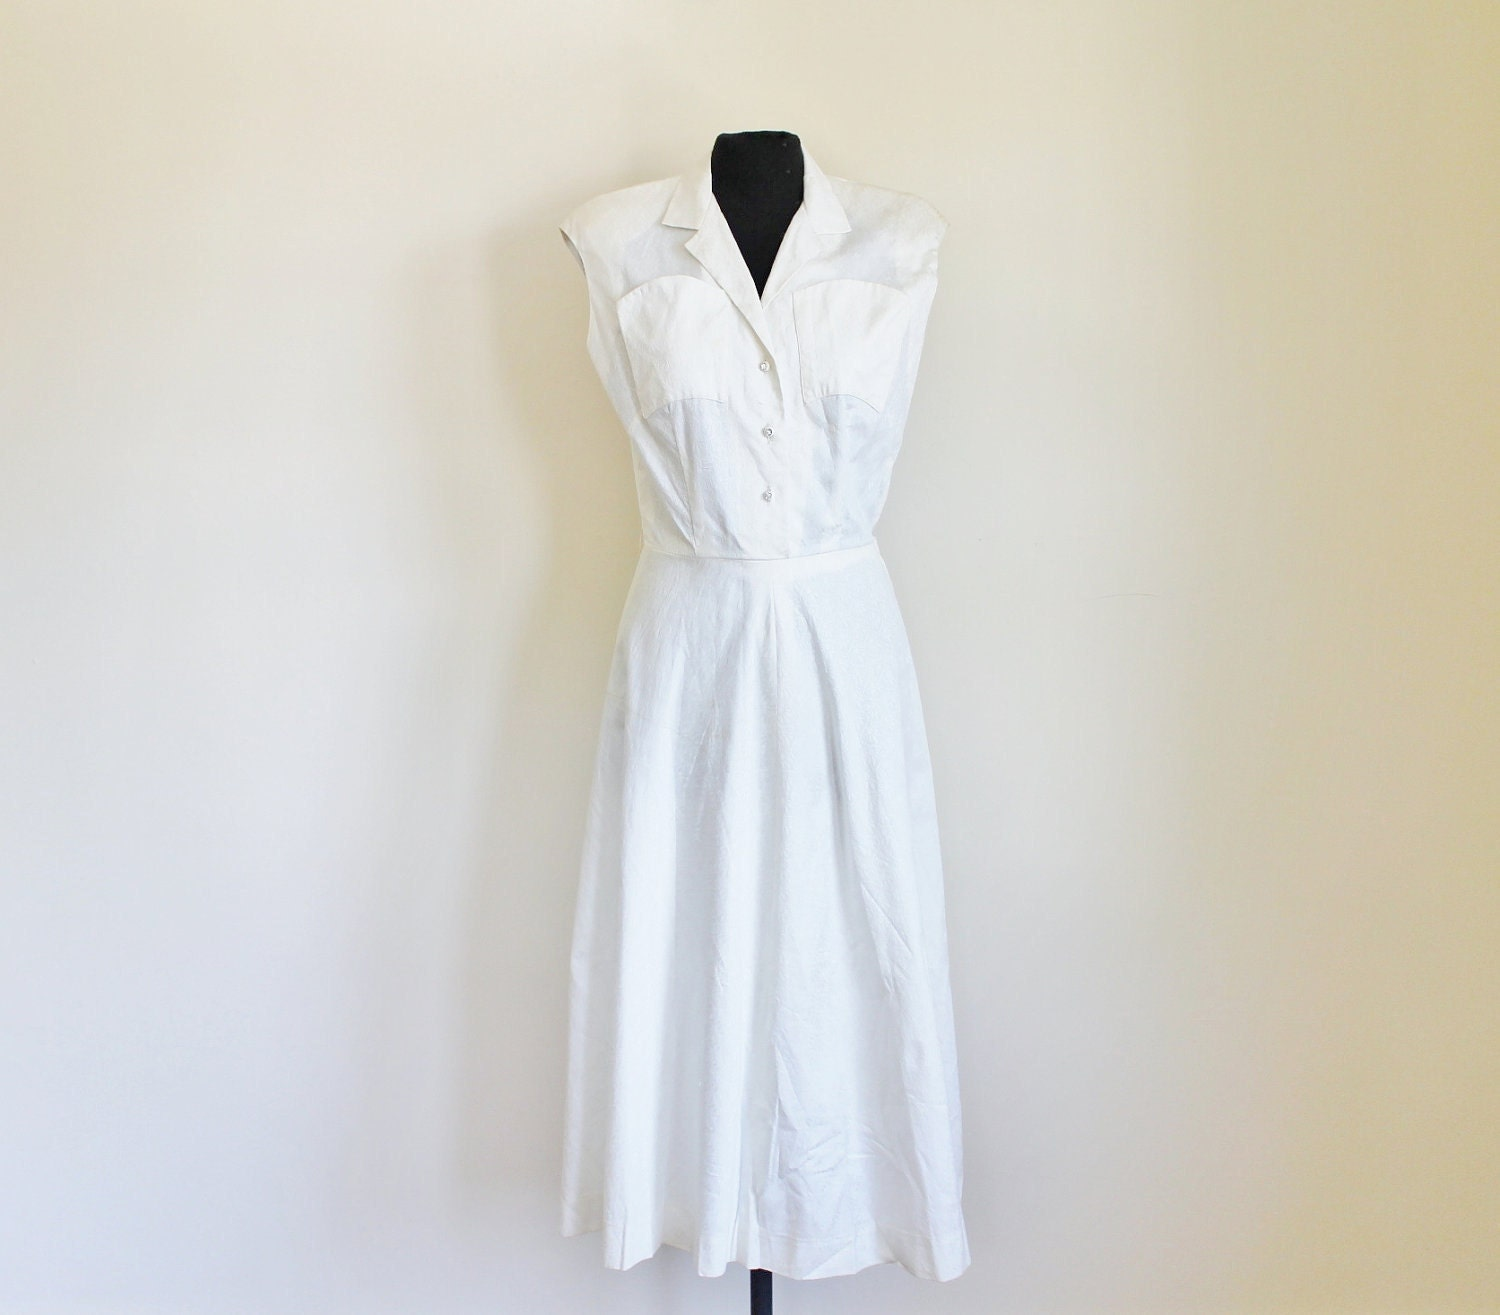 Casual White Cotton Wedding Slip Dresses 117